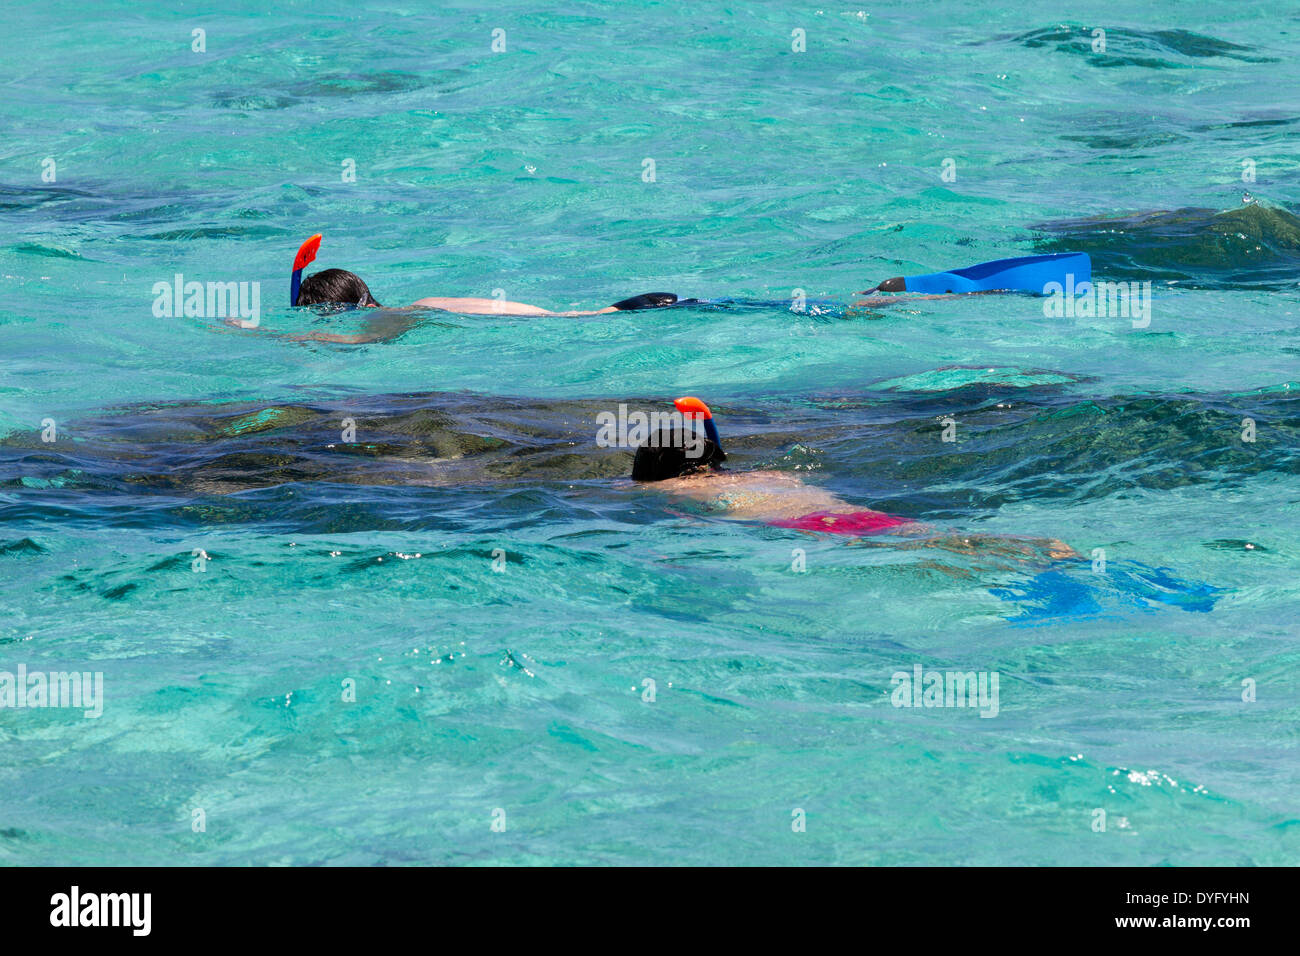 Newlywed couple snorkeling in turquoise waters of French Polynesia while on vacation - Stock Image